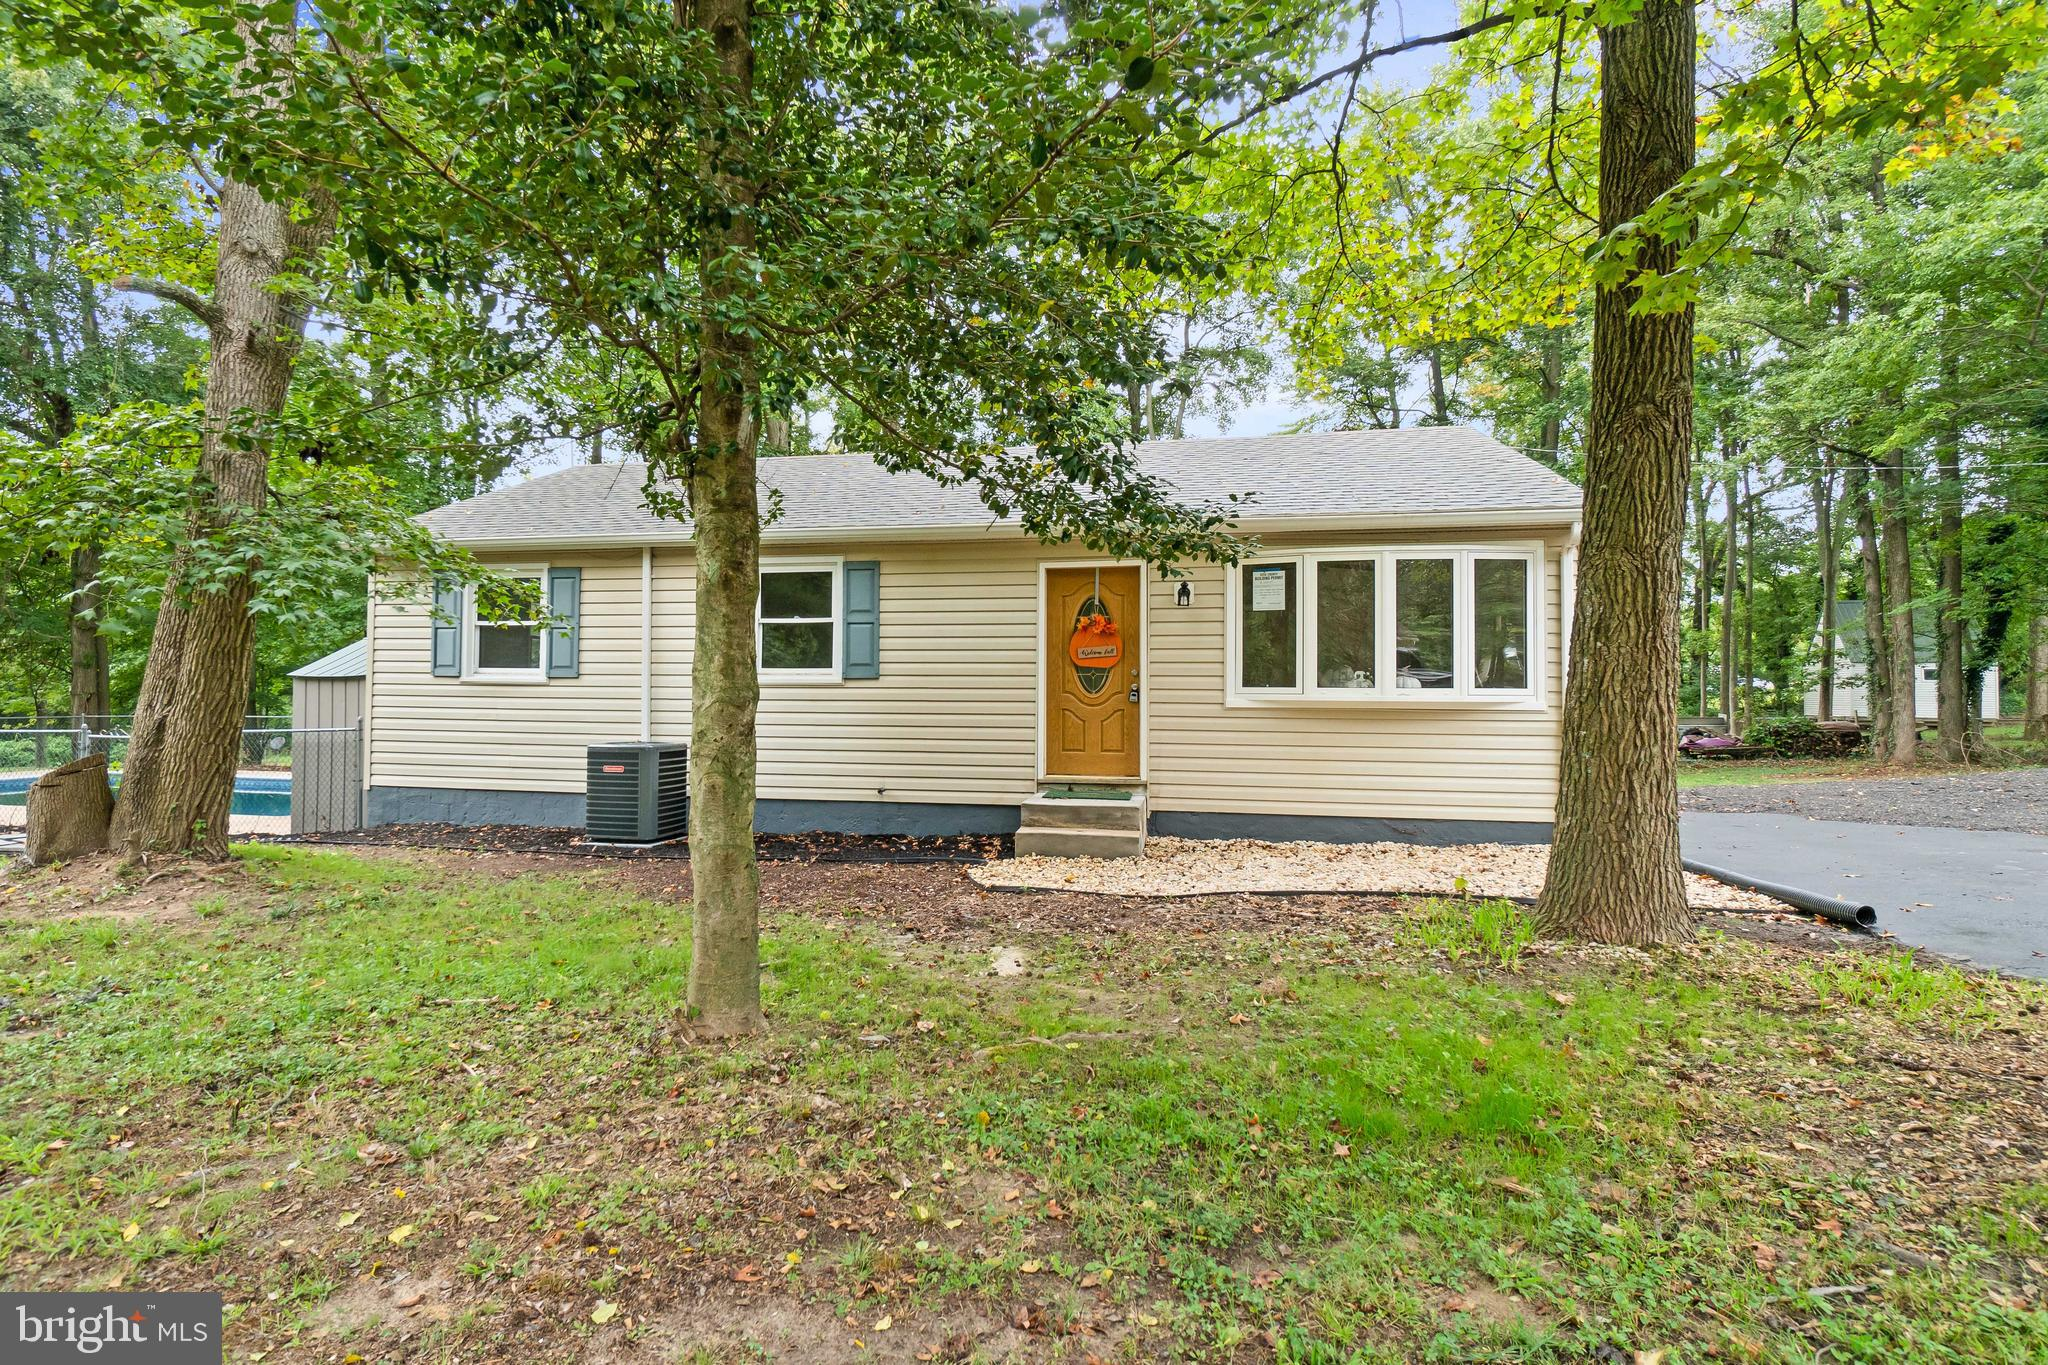 Completely renovated move-in ready rancher with in-ground pool (new liner and pump), detached 2 car